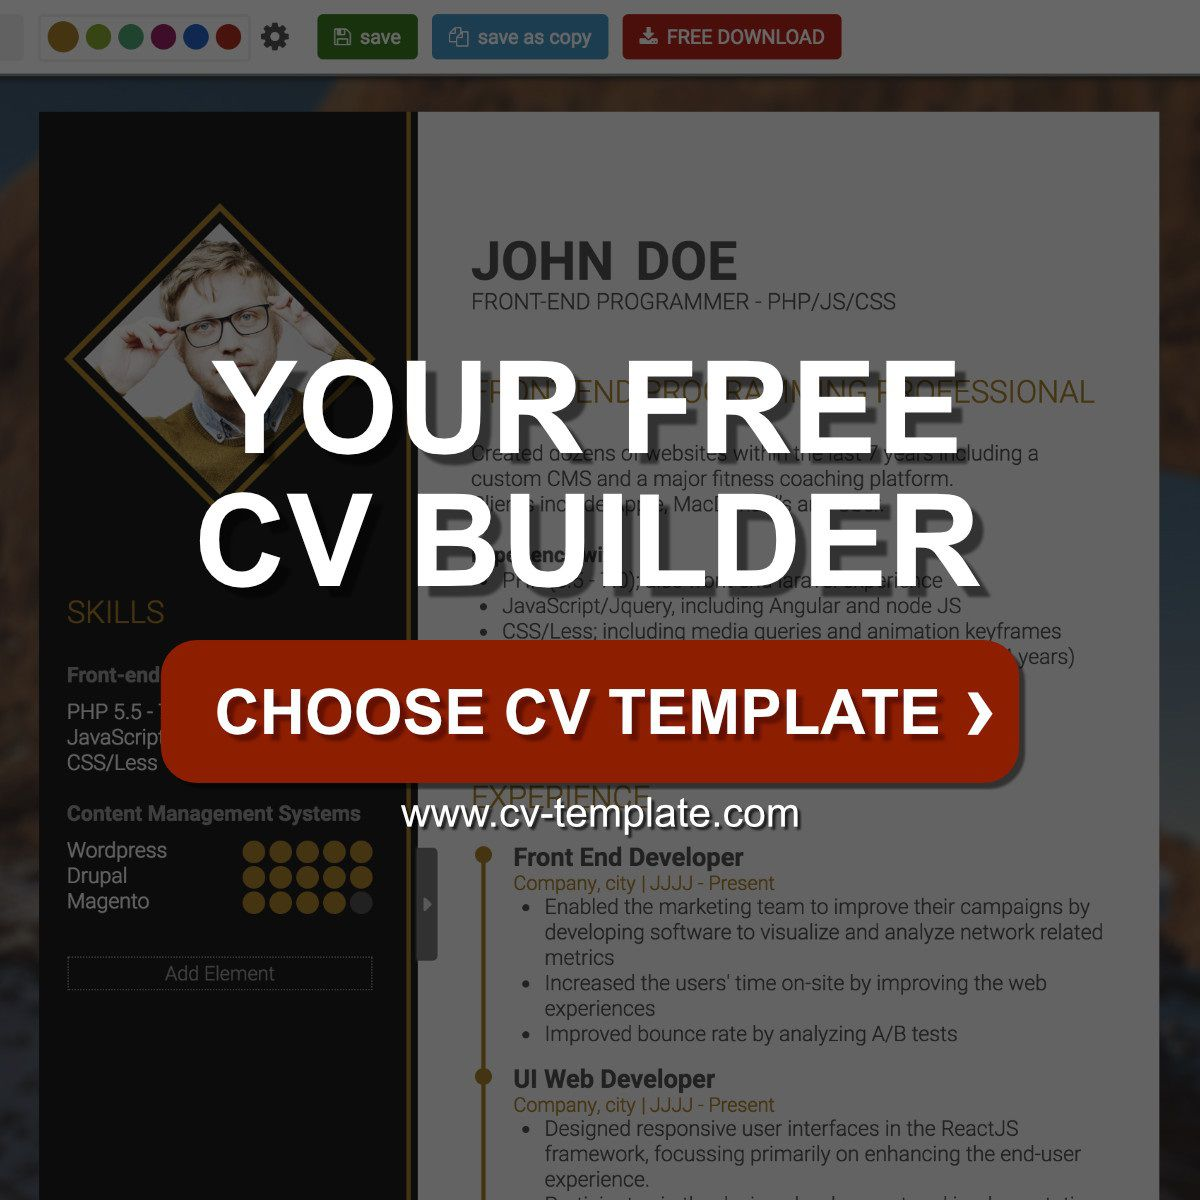 004 Wondrou Create Resume Template Online High Definition  Cv FreeFull